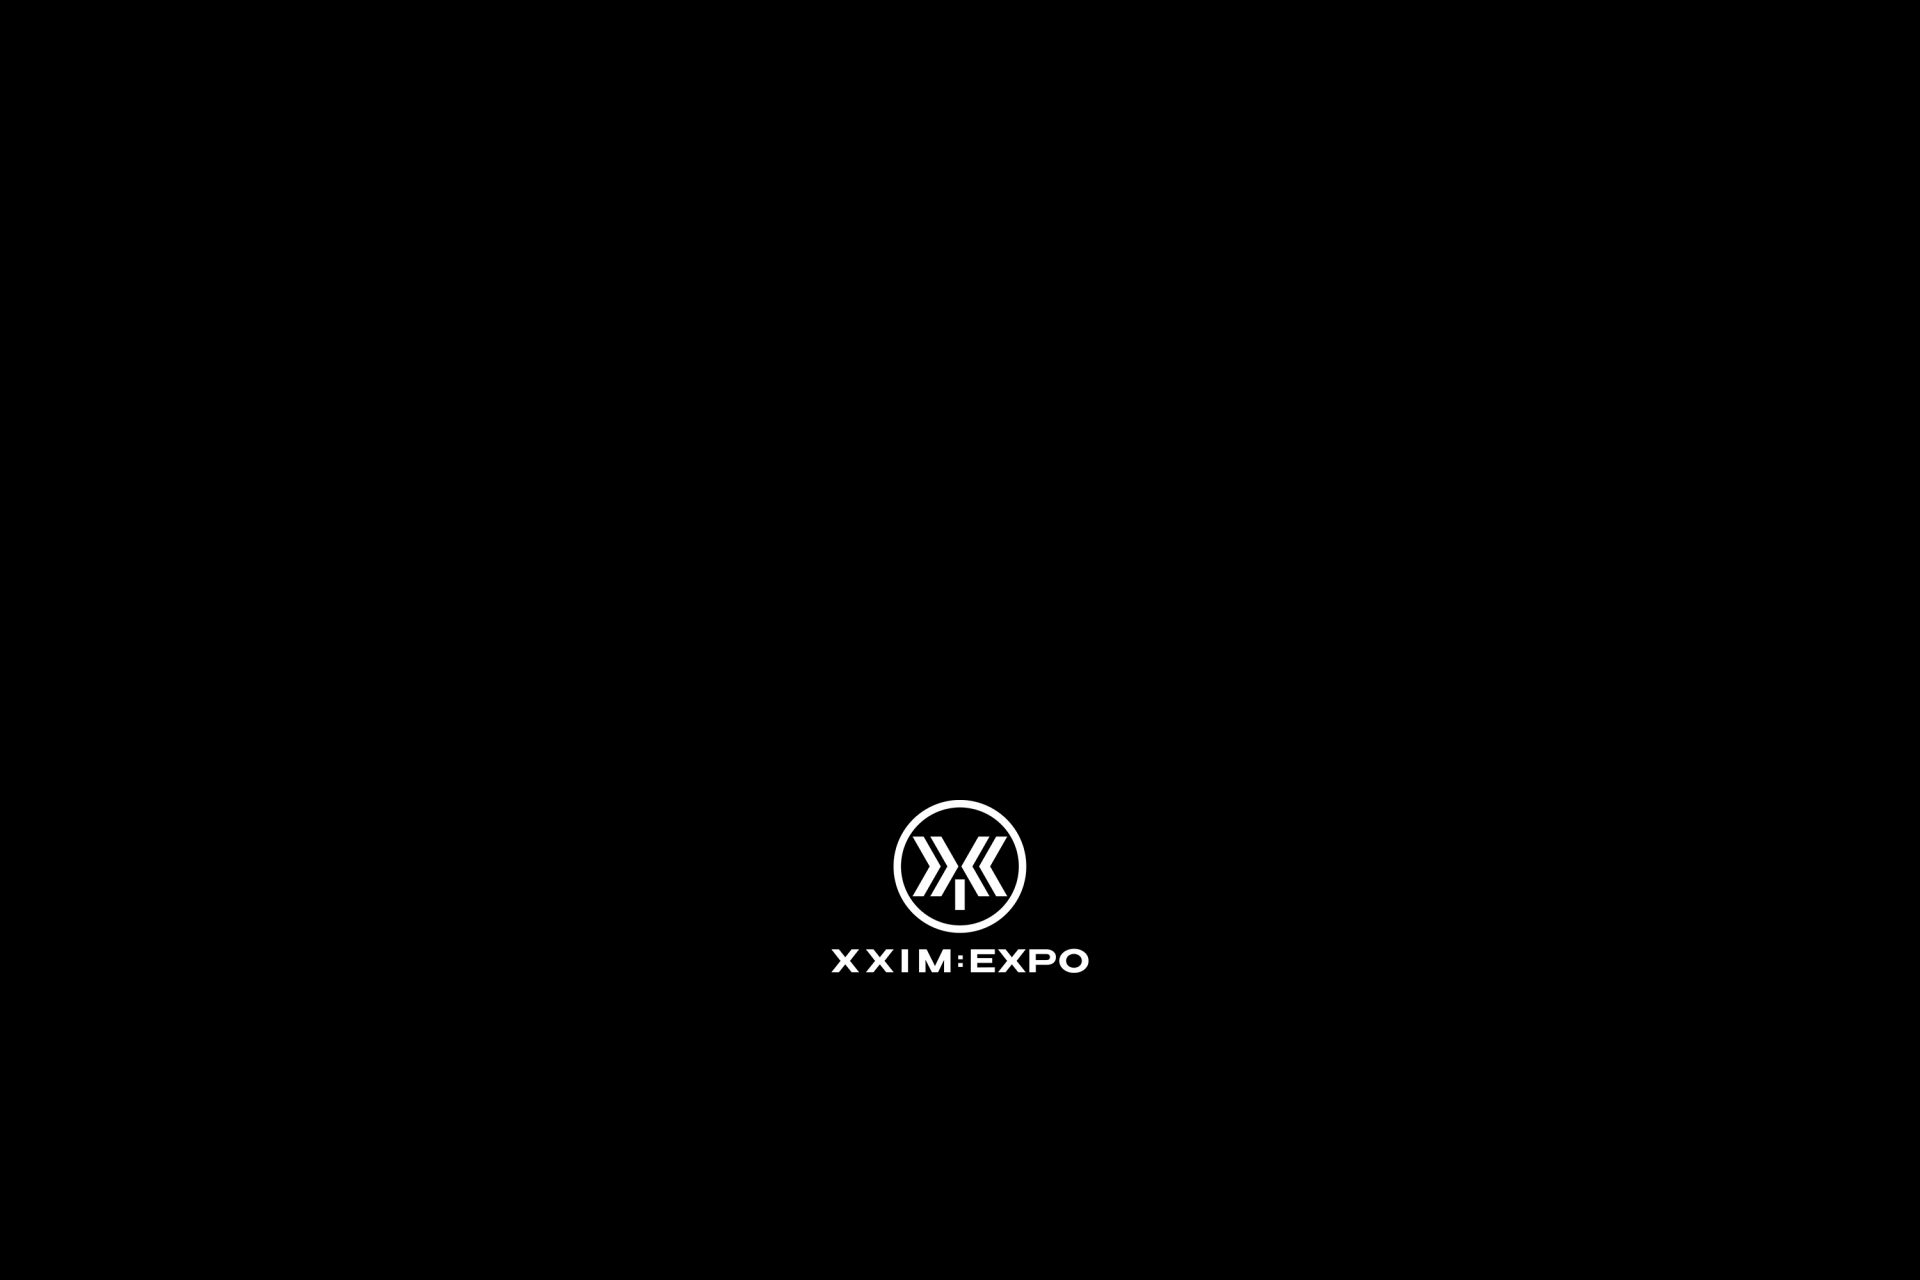 XXIM Records launches new project XXIM:EXPO